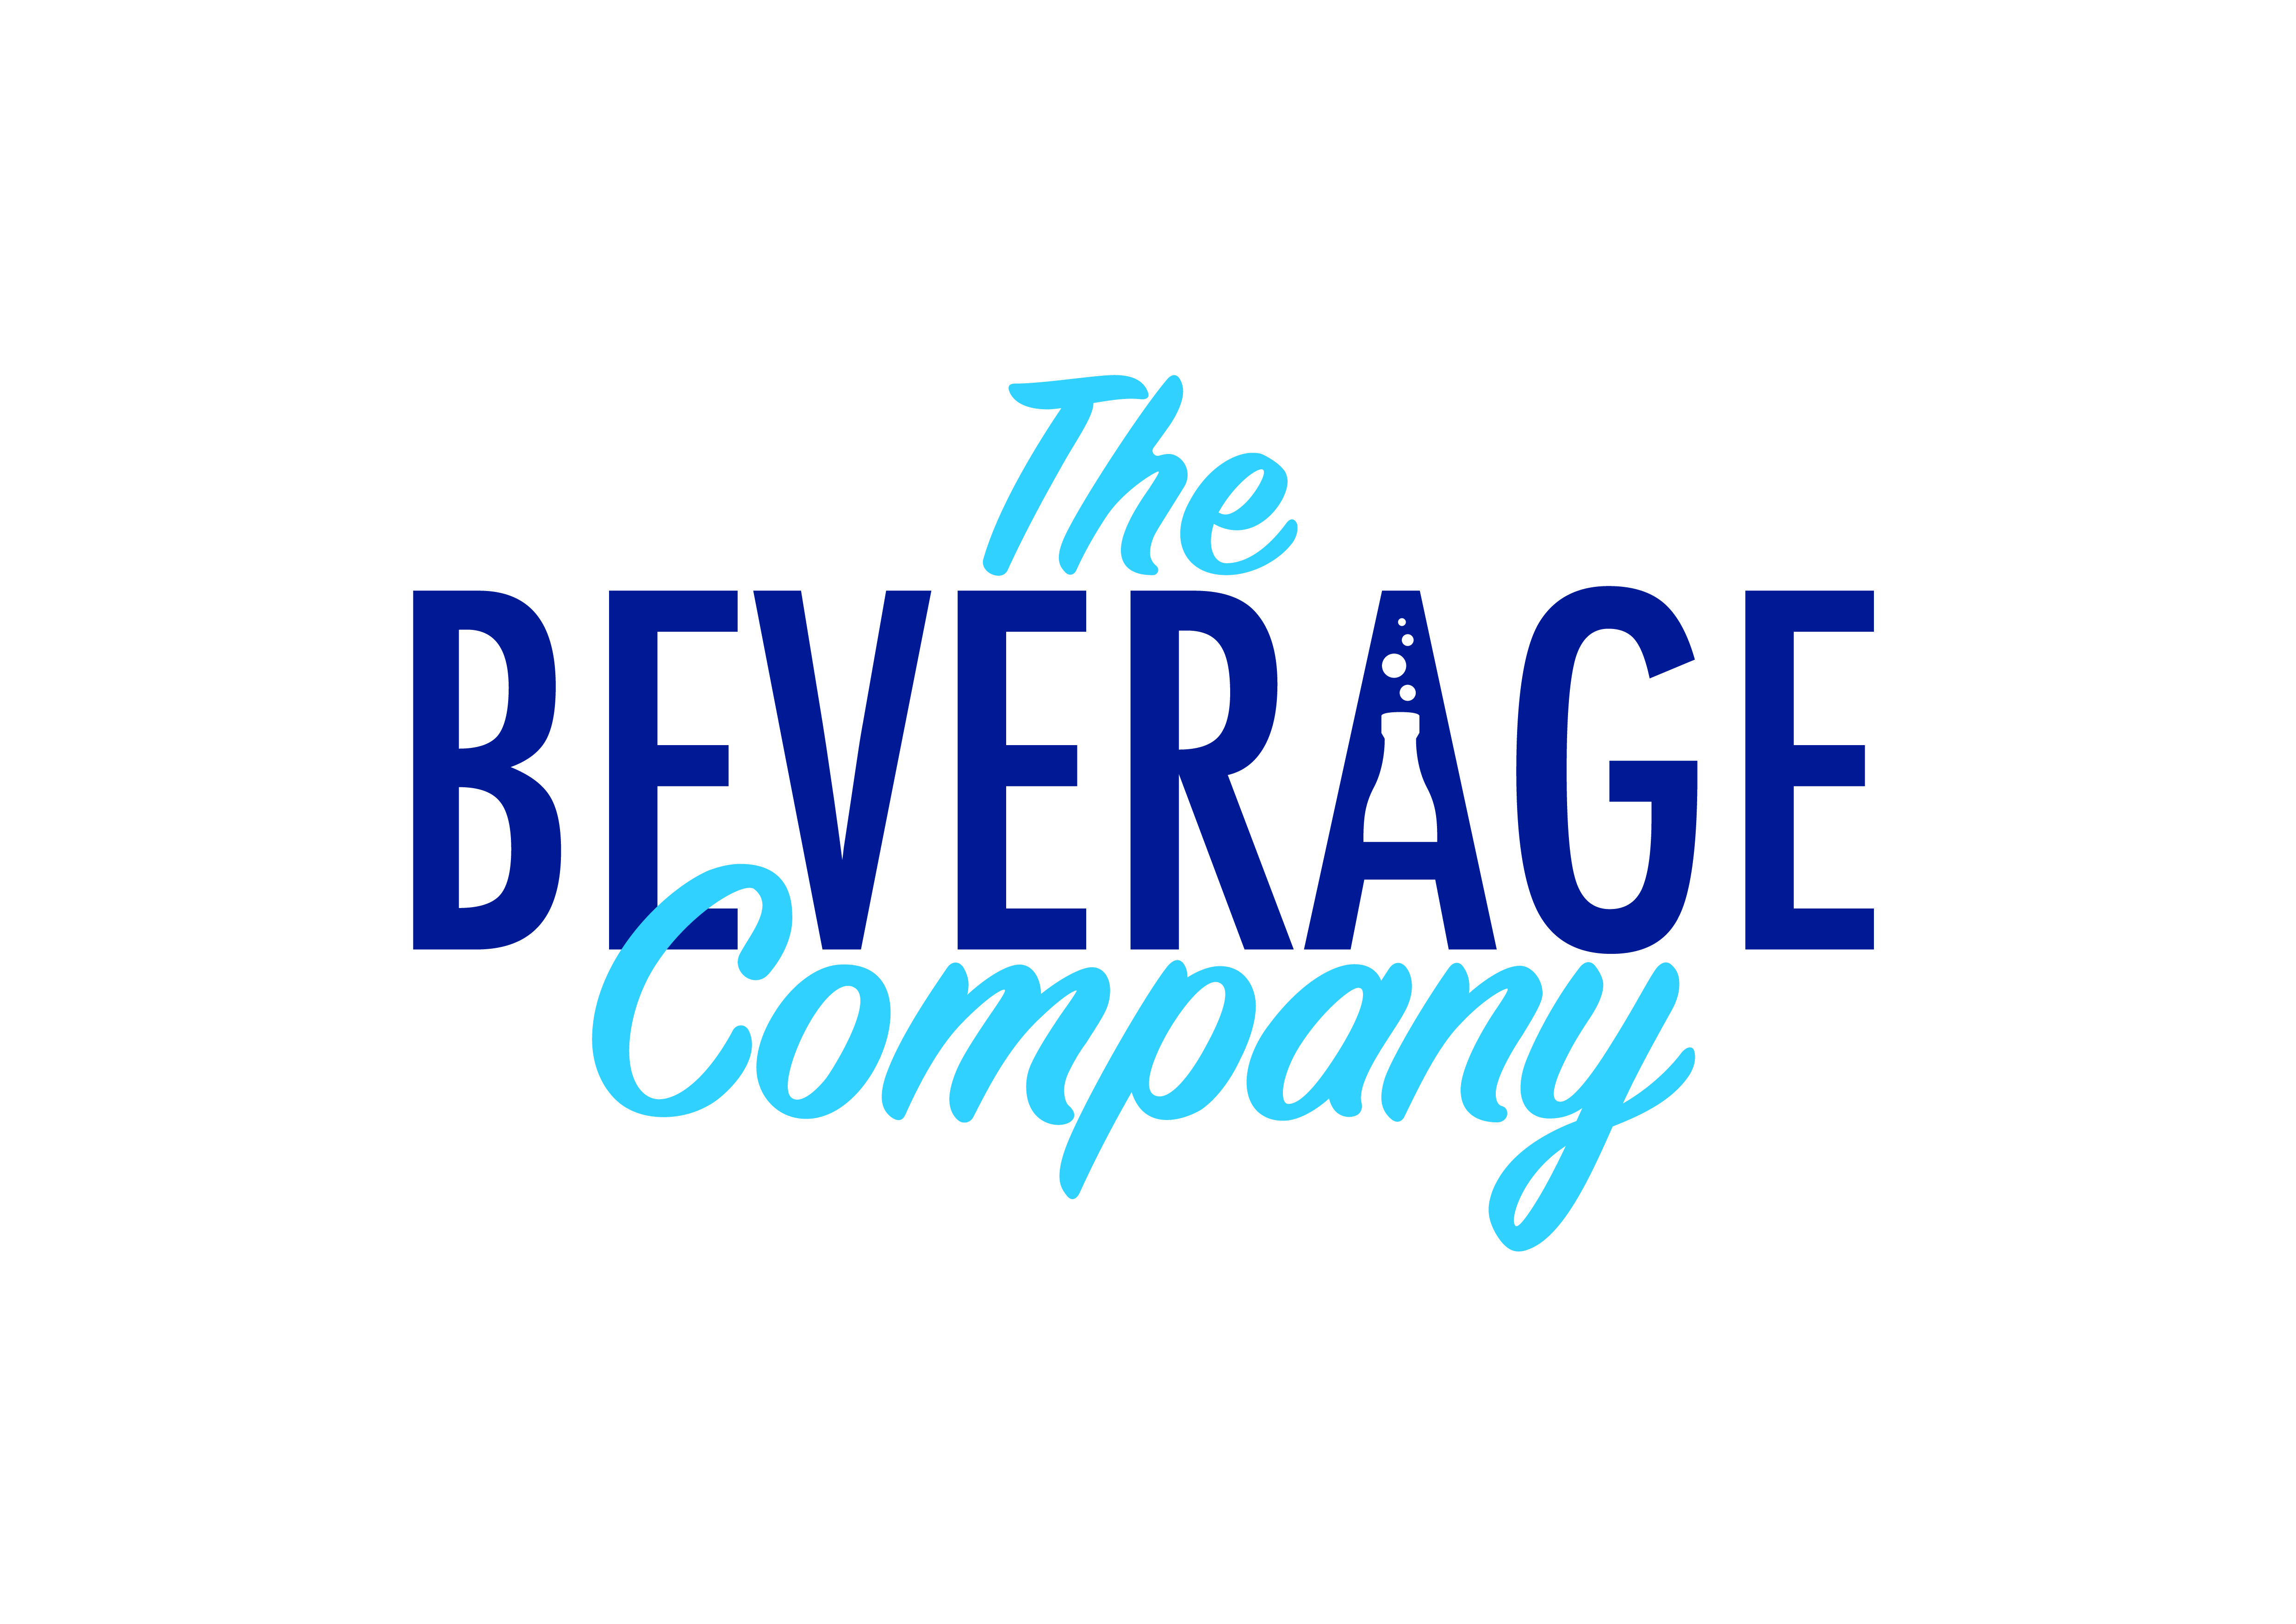 Little Green Beverages (Pty) Ltd t/a The Beverage Company